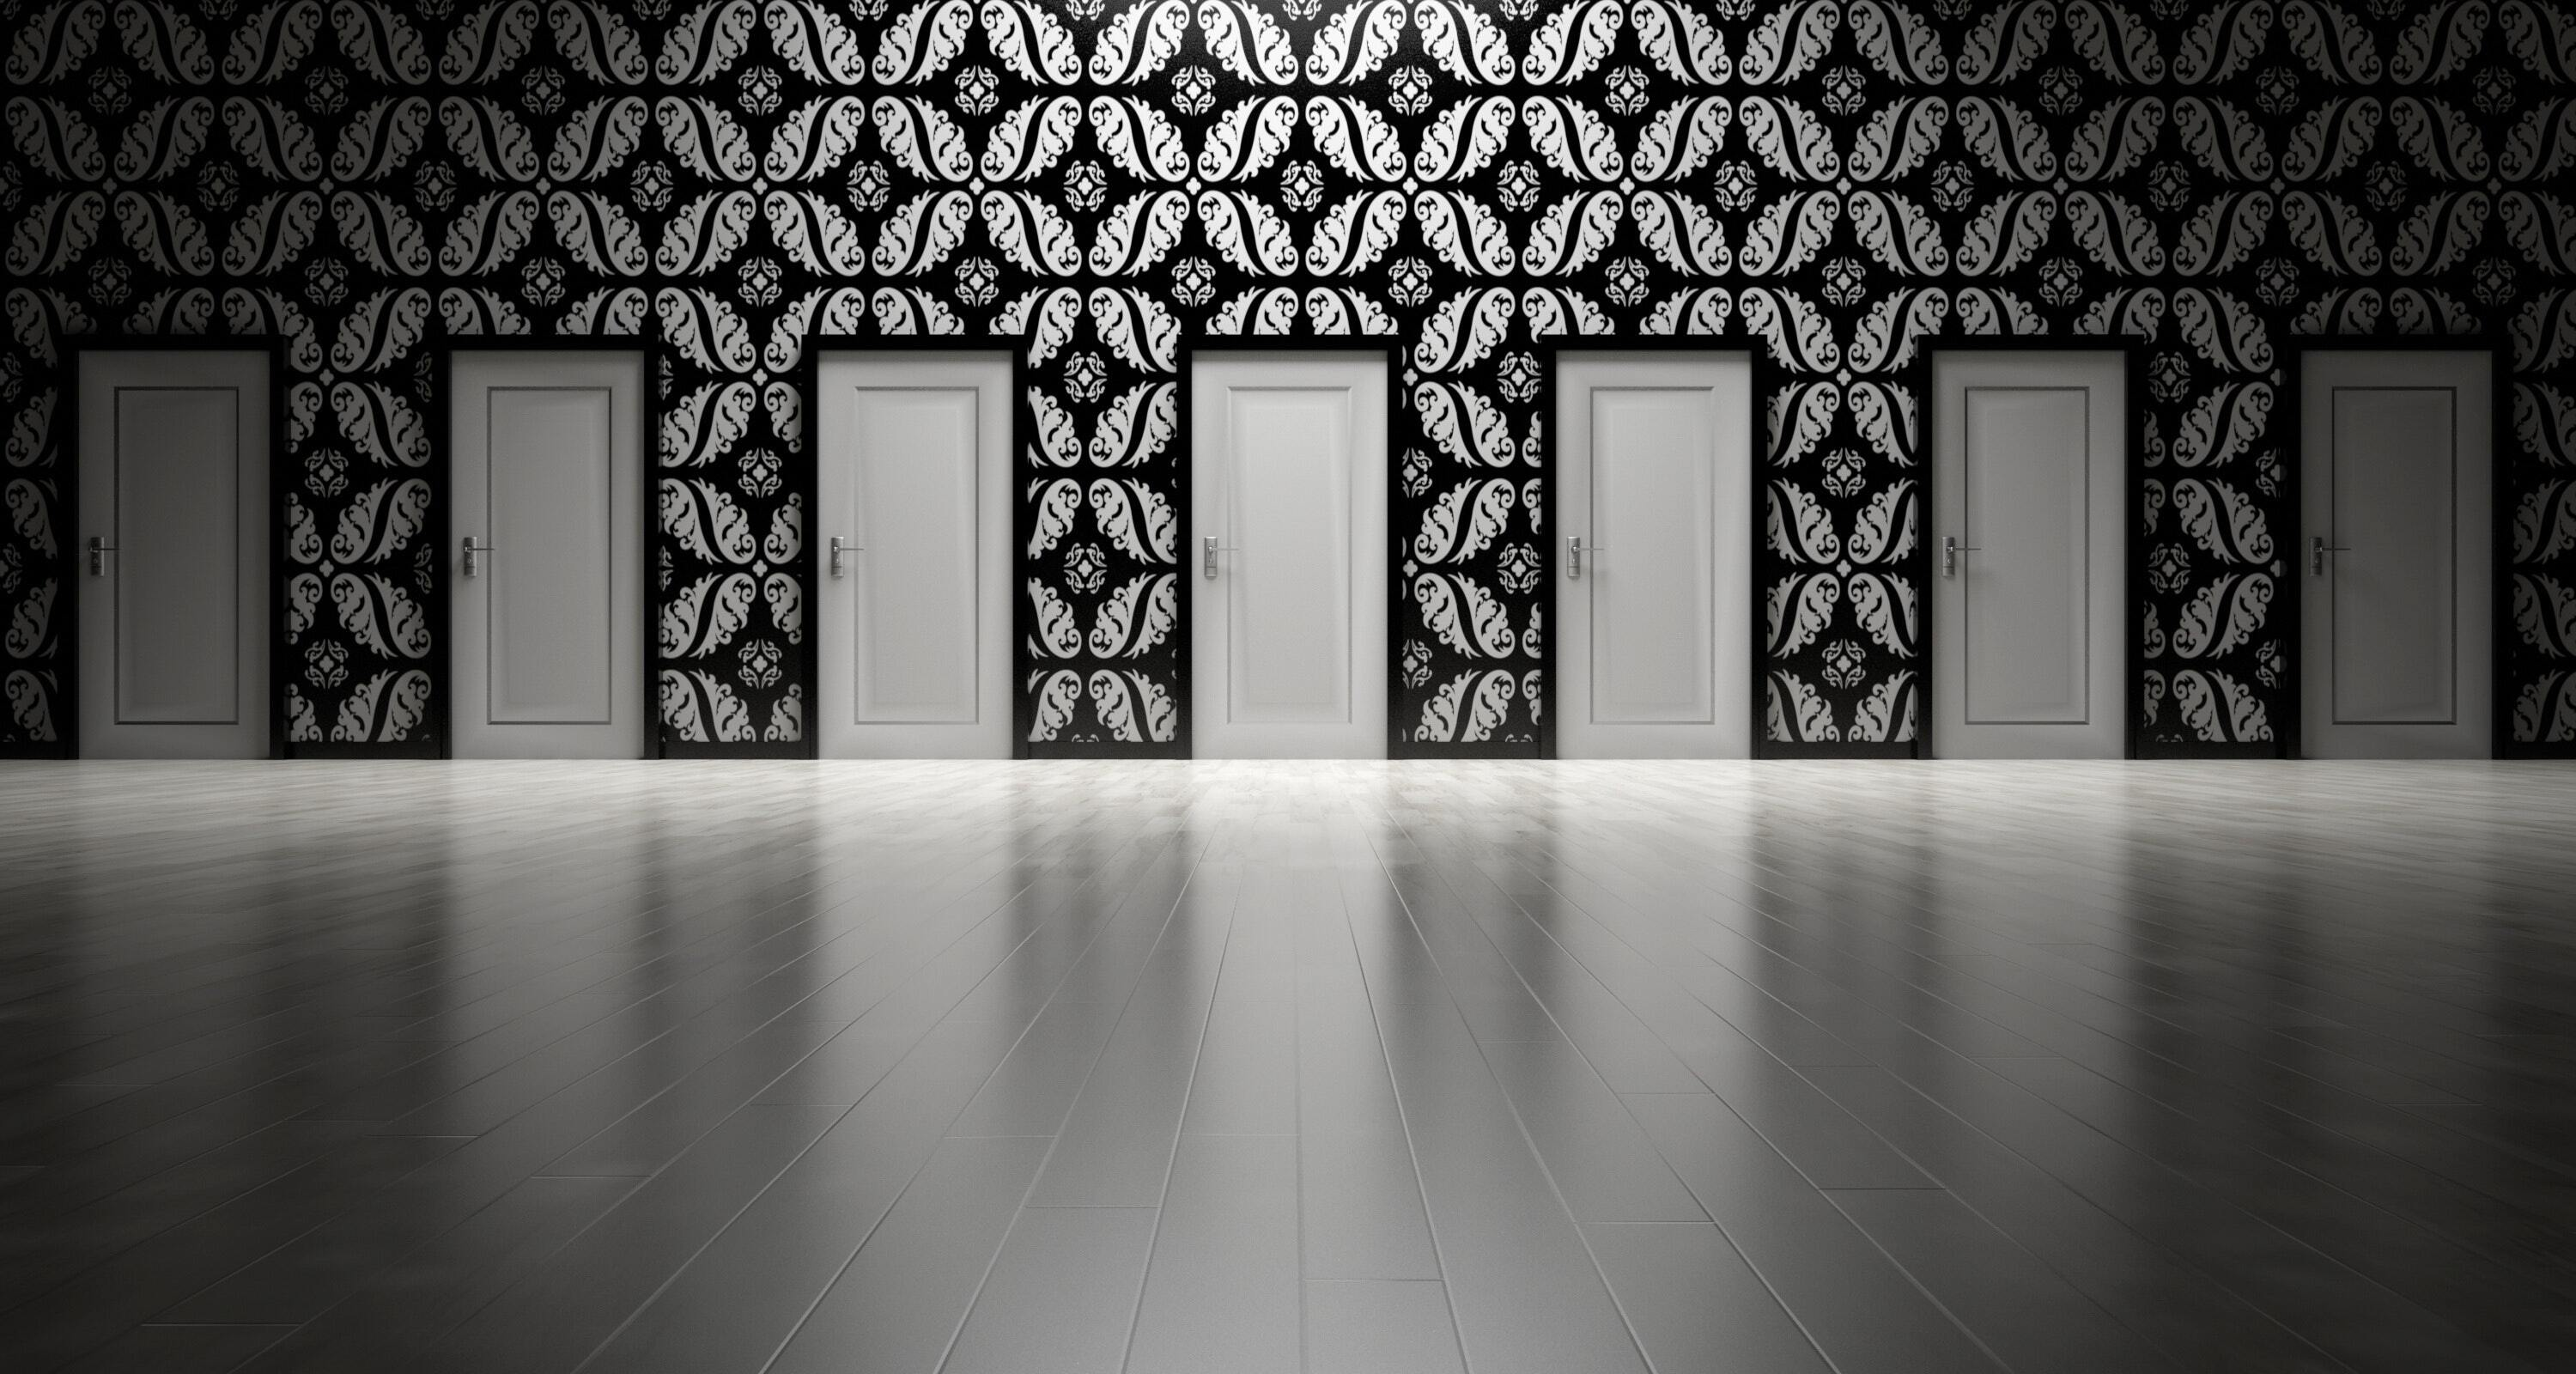 a series of doors one could choose to pass through